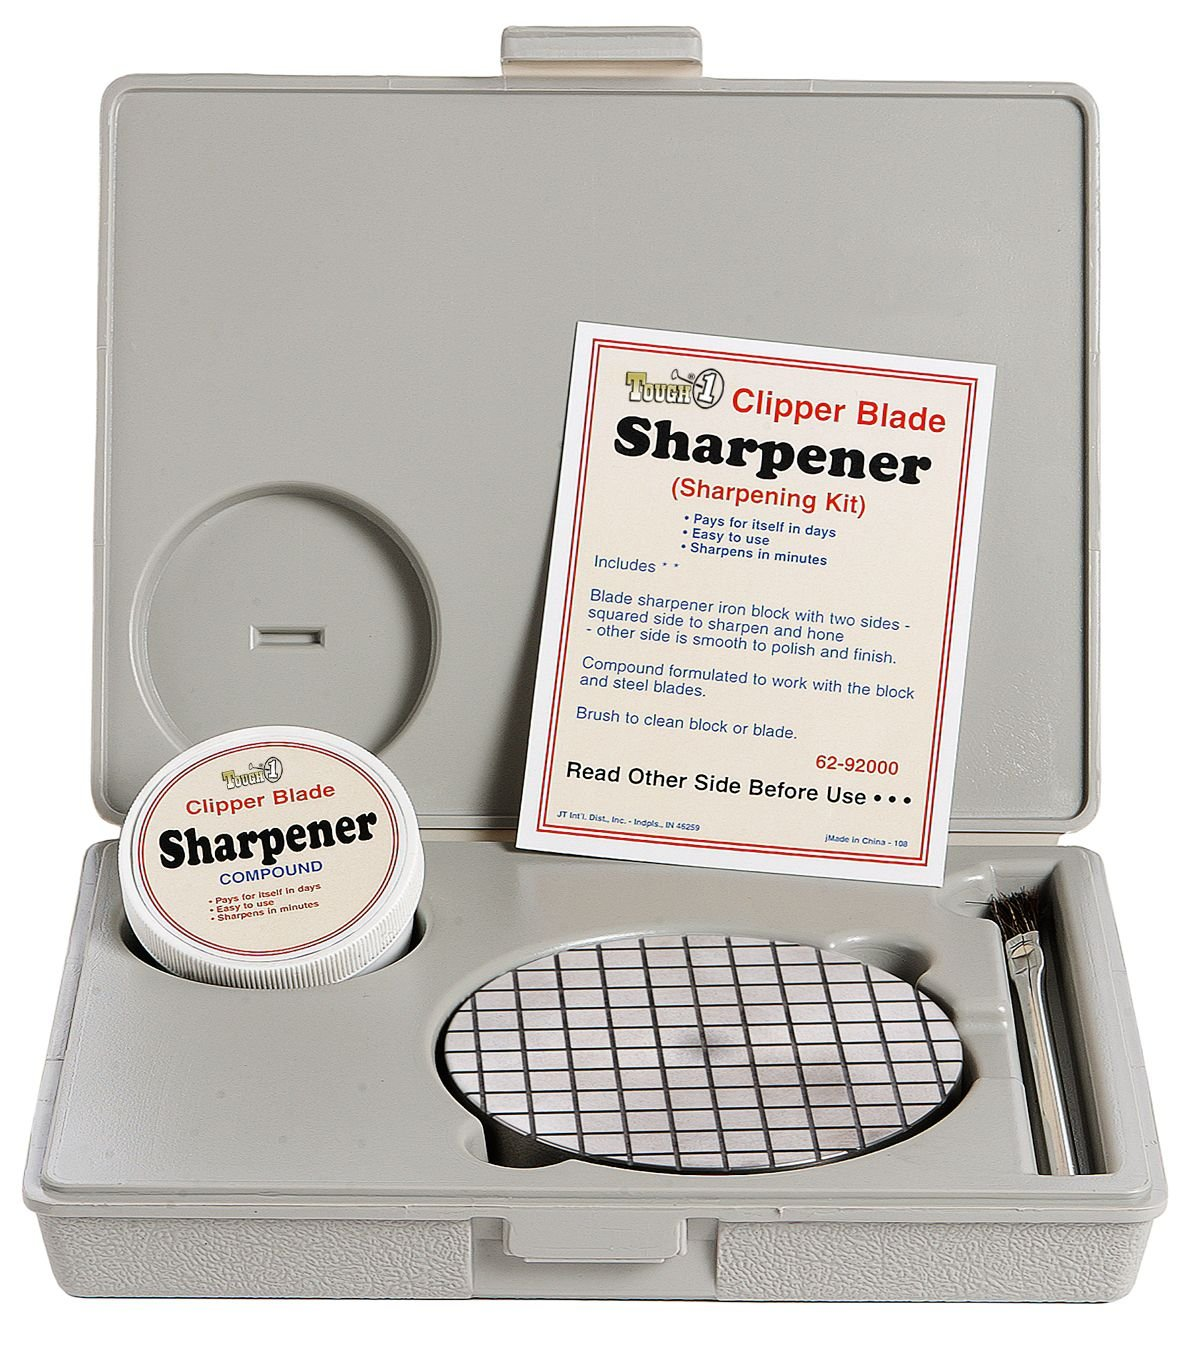 Amazon.com : Tough 1 Clipper Blade Sharpener Kit : Horse Clippers ...